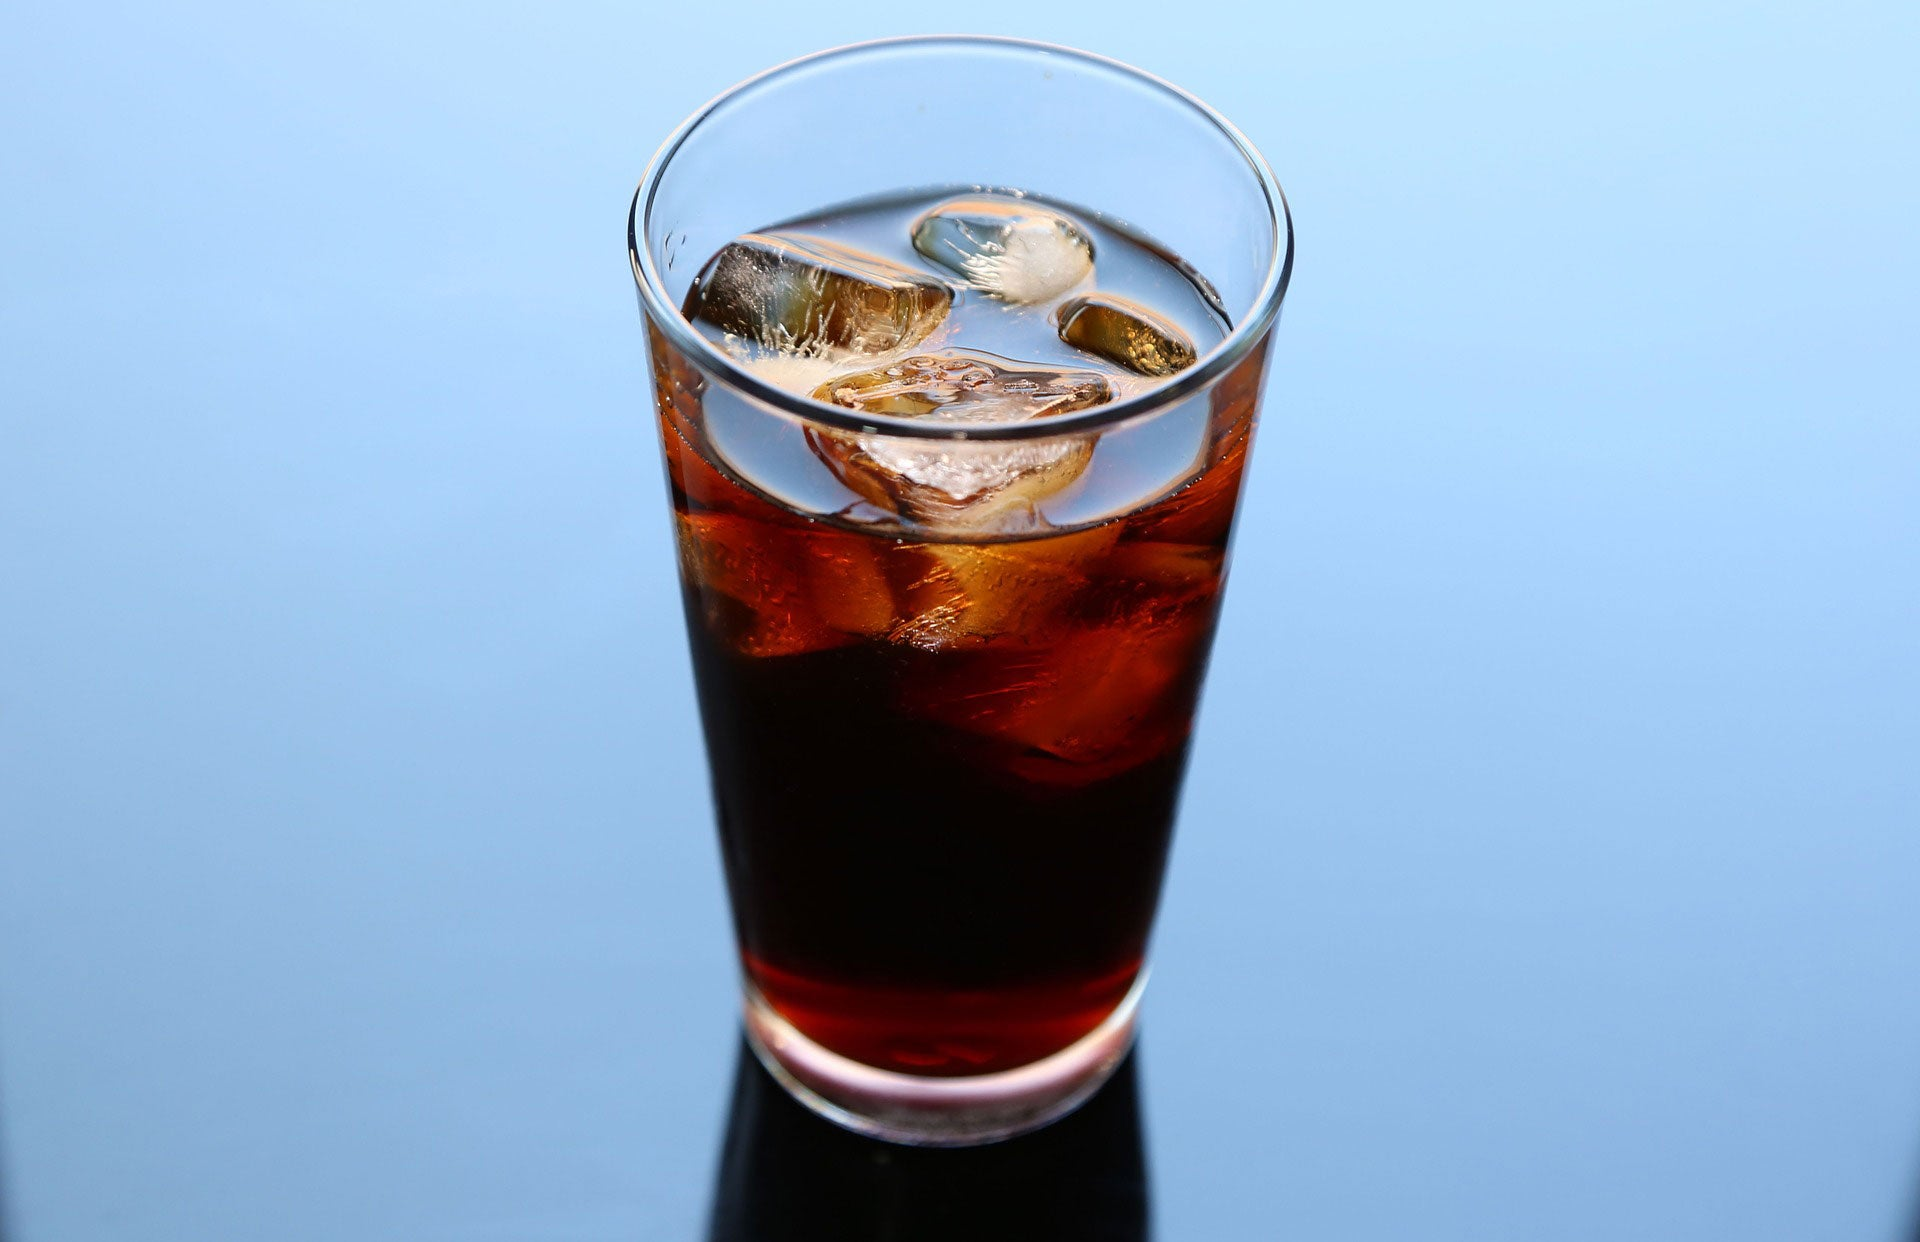 Glass of cold brewed coffee on blue background